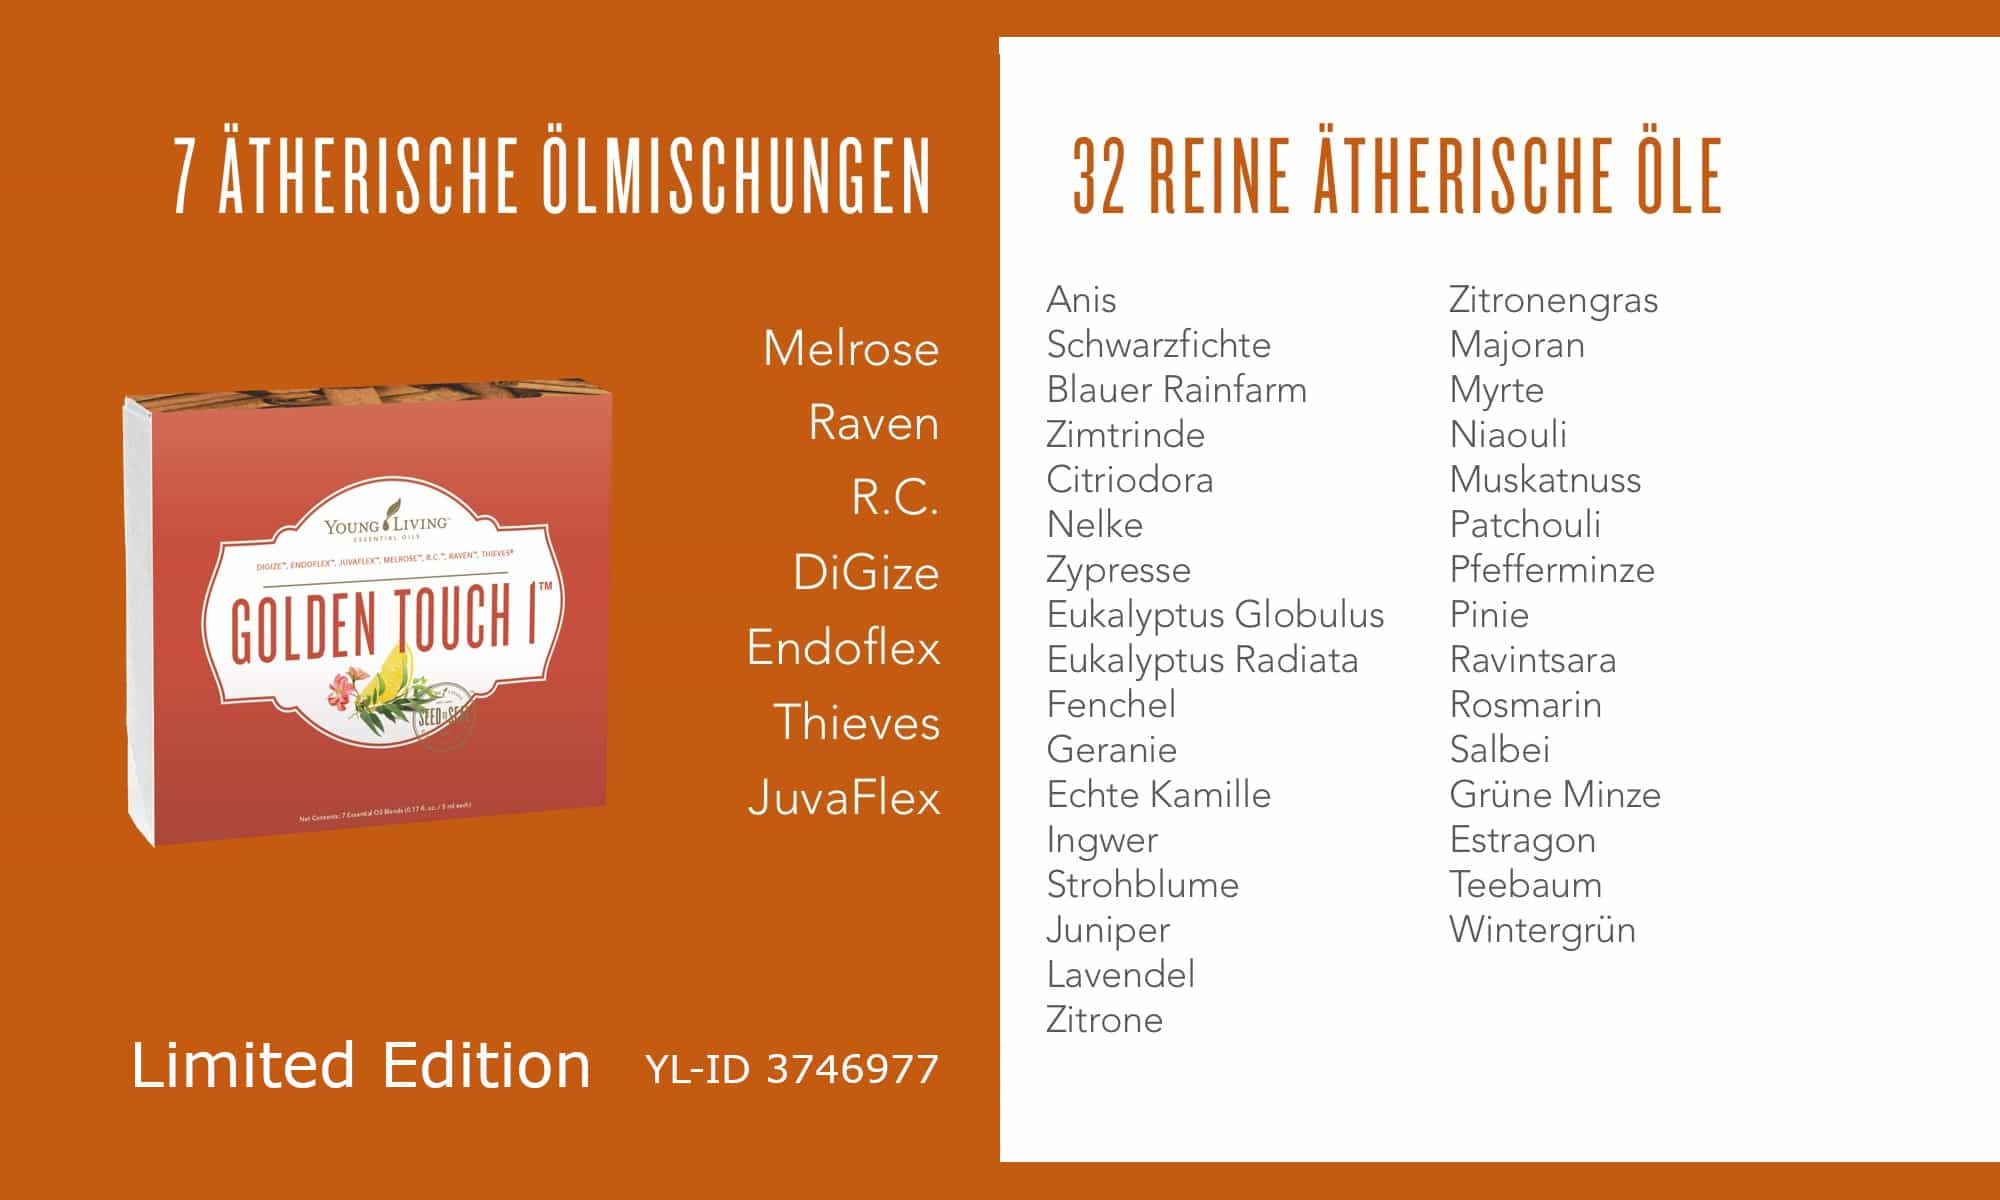 Liste der ätherischen Öle im Golden Touch Set 1 (Limited Edition)